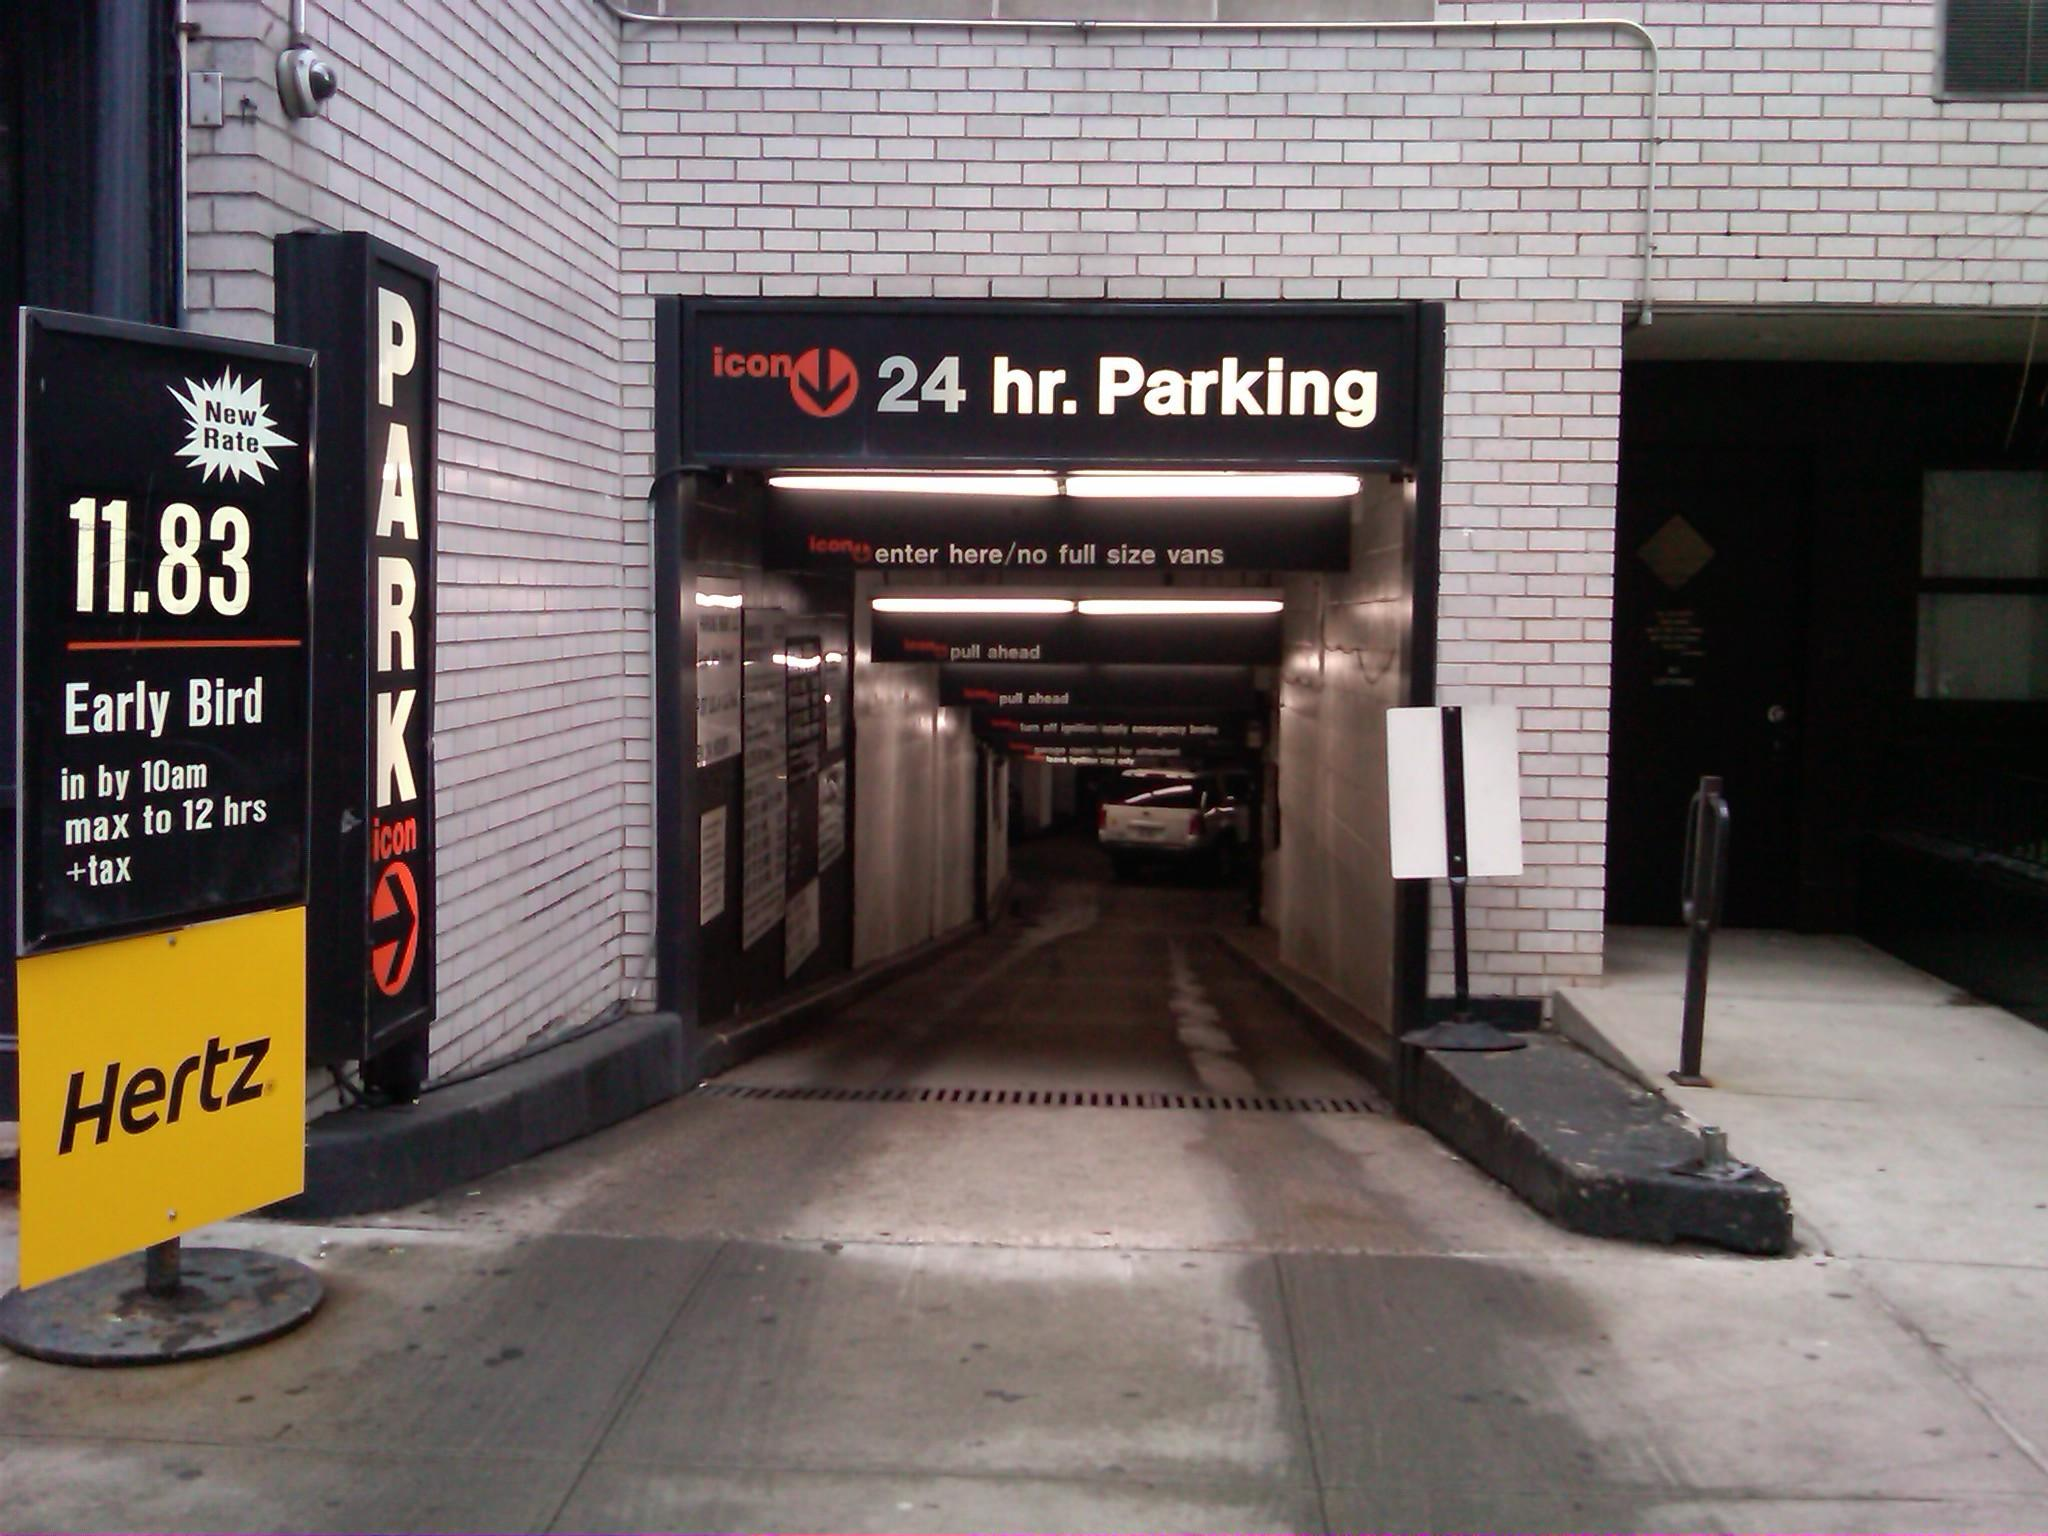 New york parking garage coupons